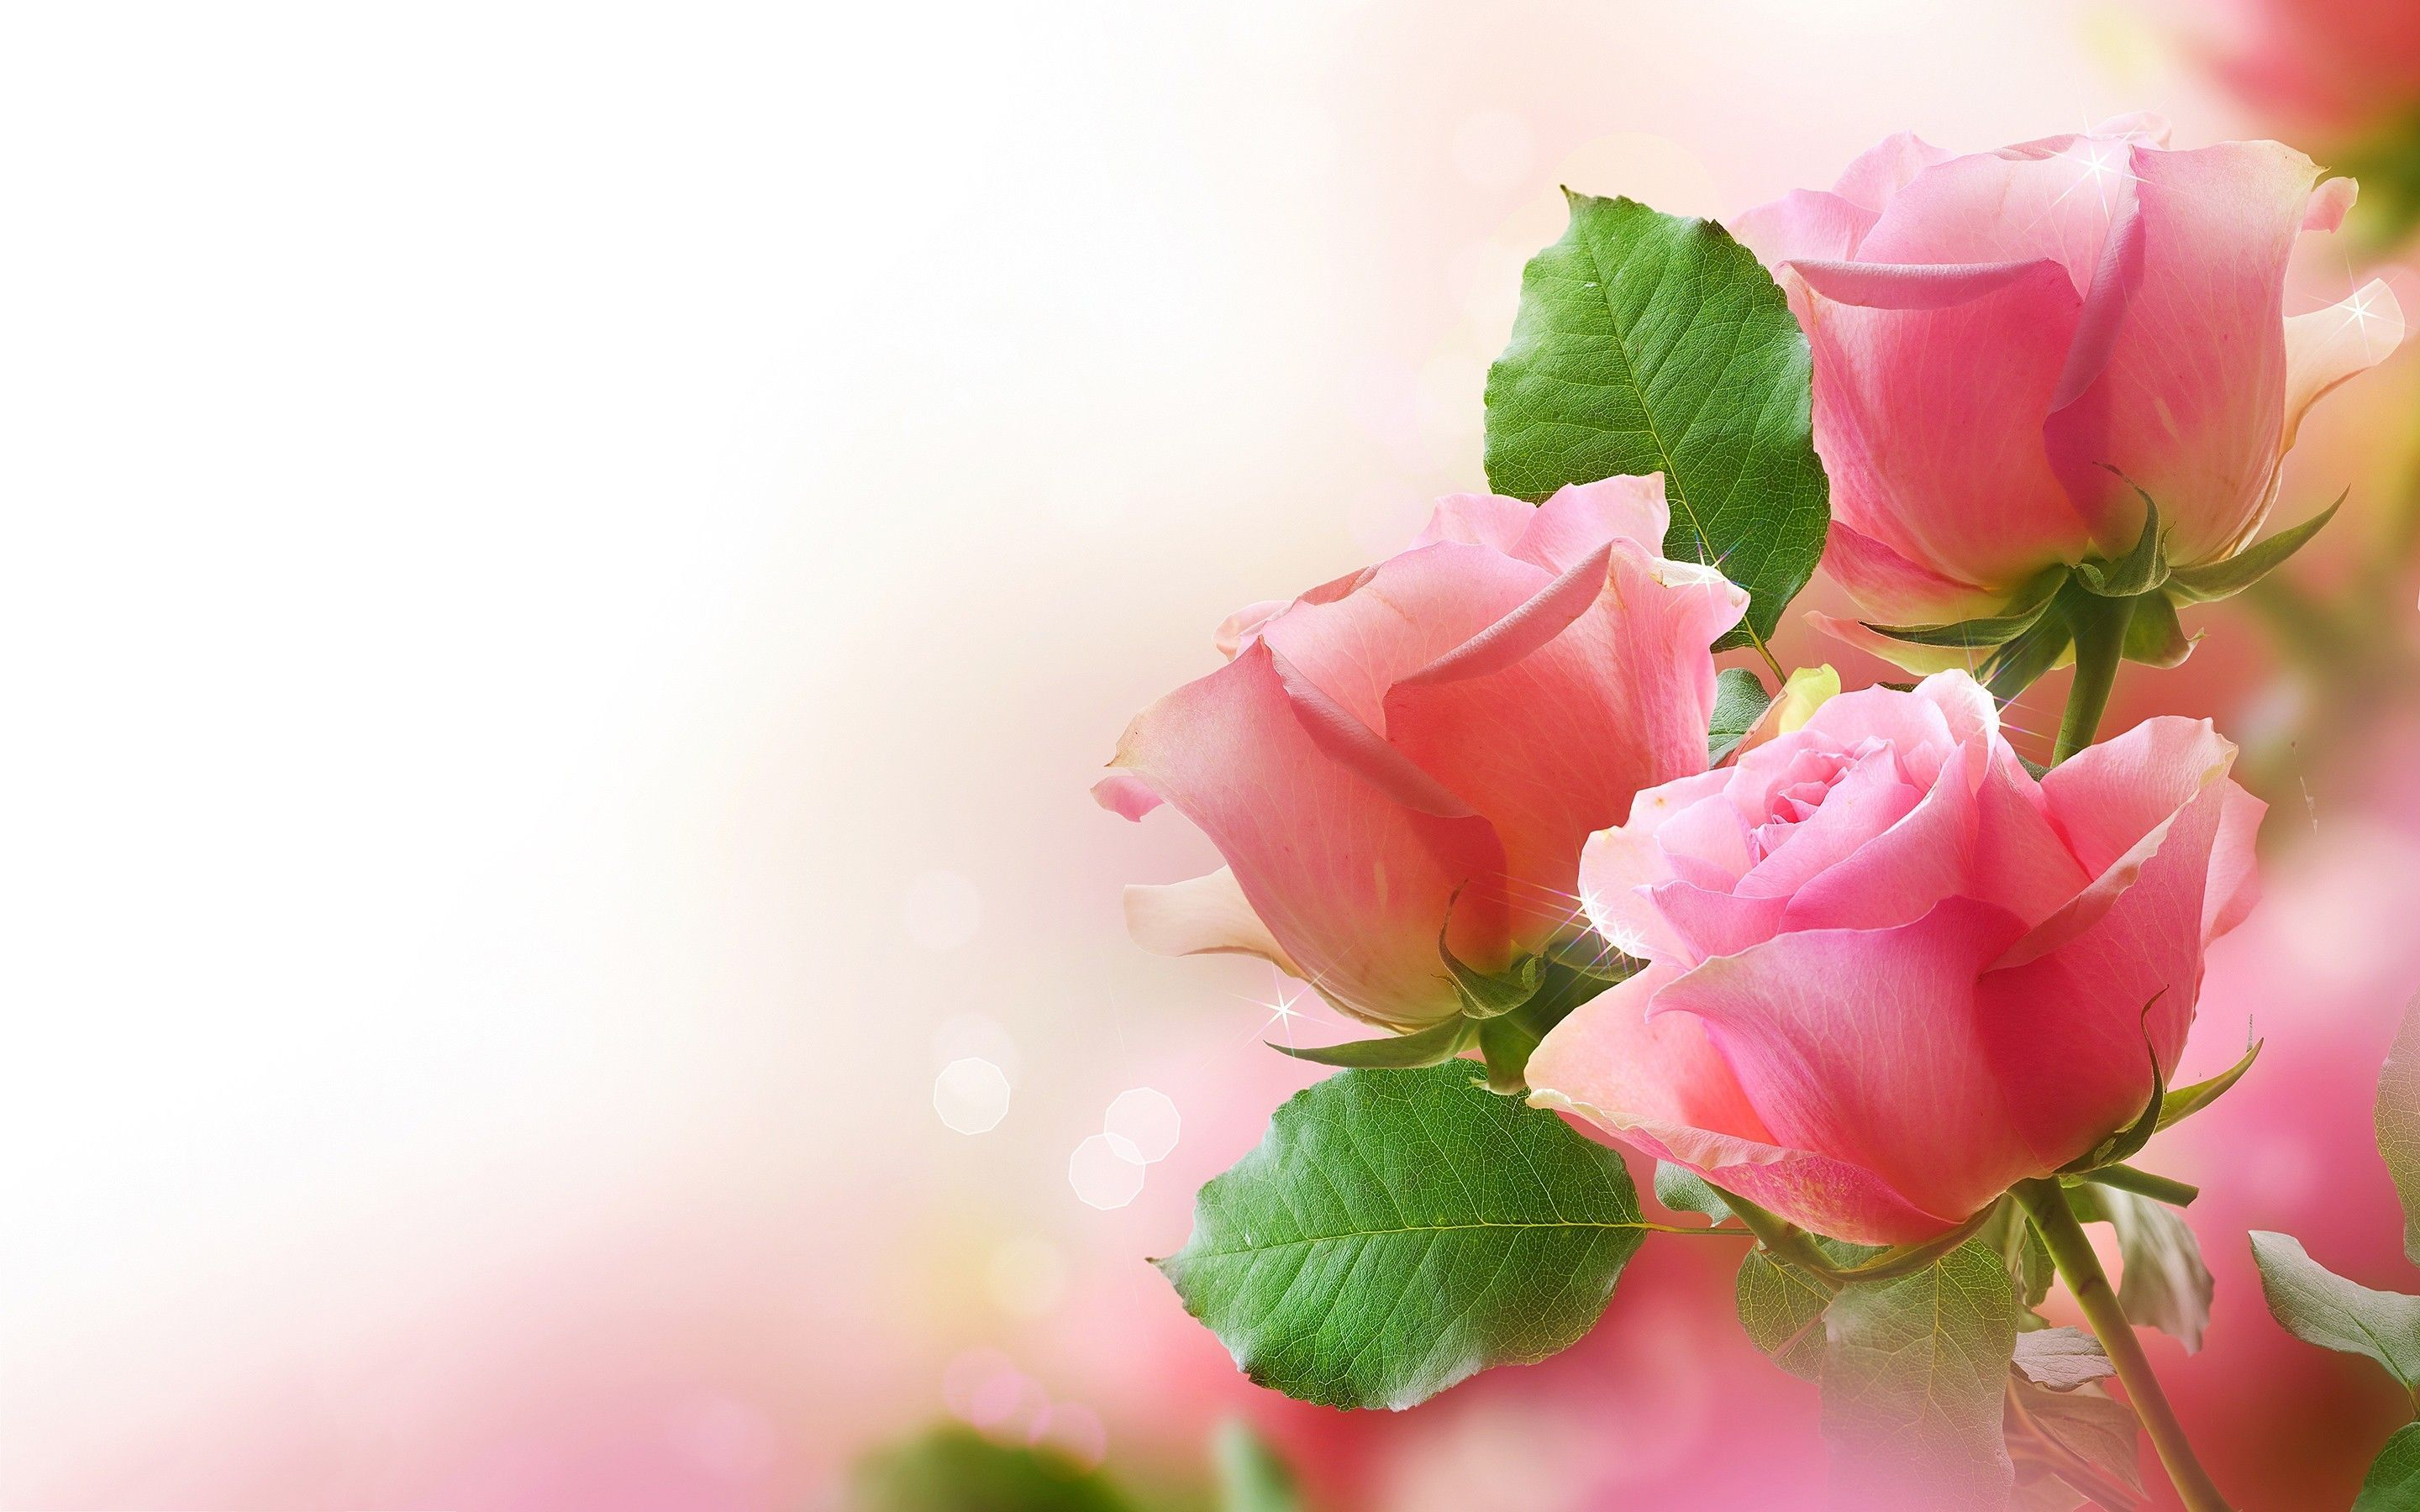 Rose Wallpapers For Desktop Full Size Hd Cool 7 Hd Wallpapers Pink Roses Background Pink Rose Flower Coffee Filter Roses